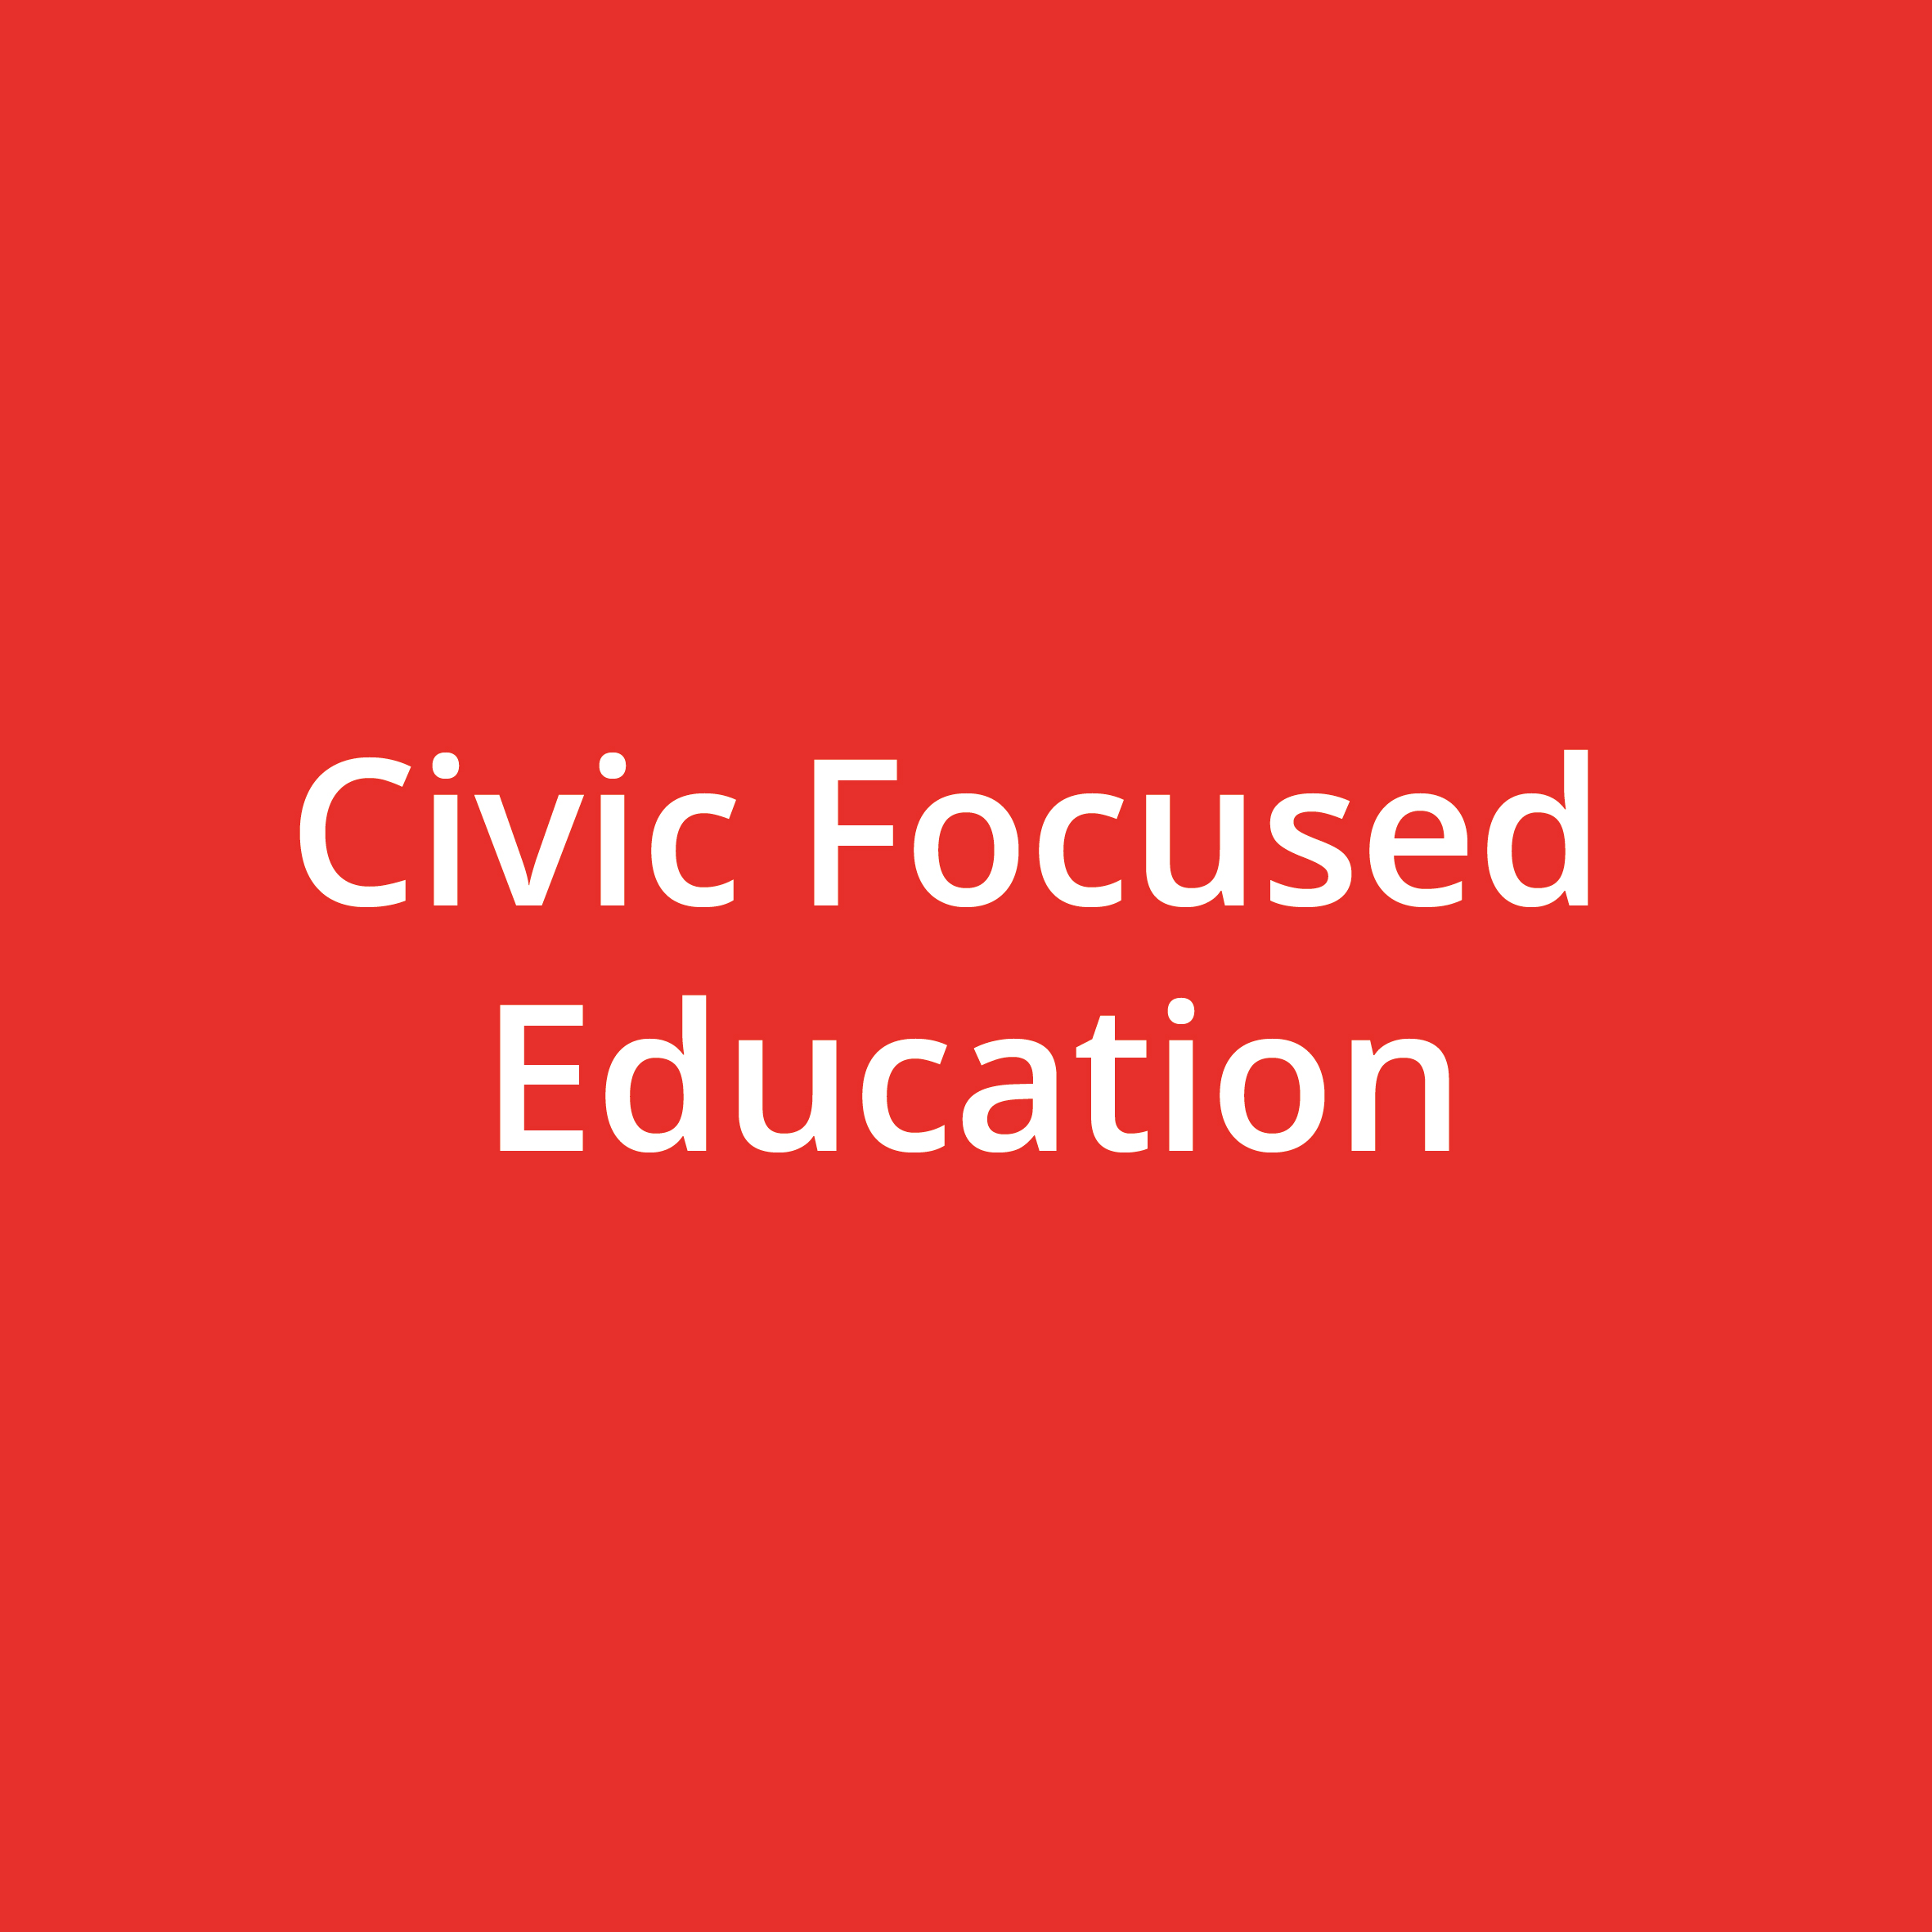 Civic Focused Education